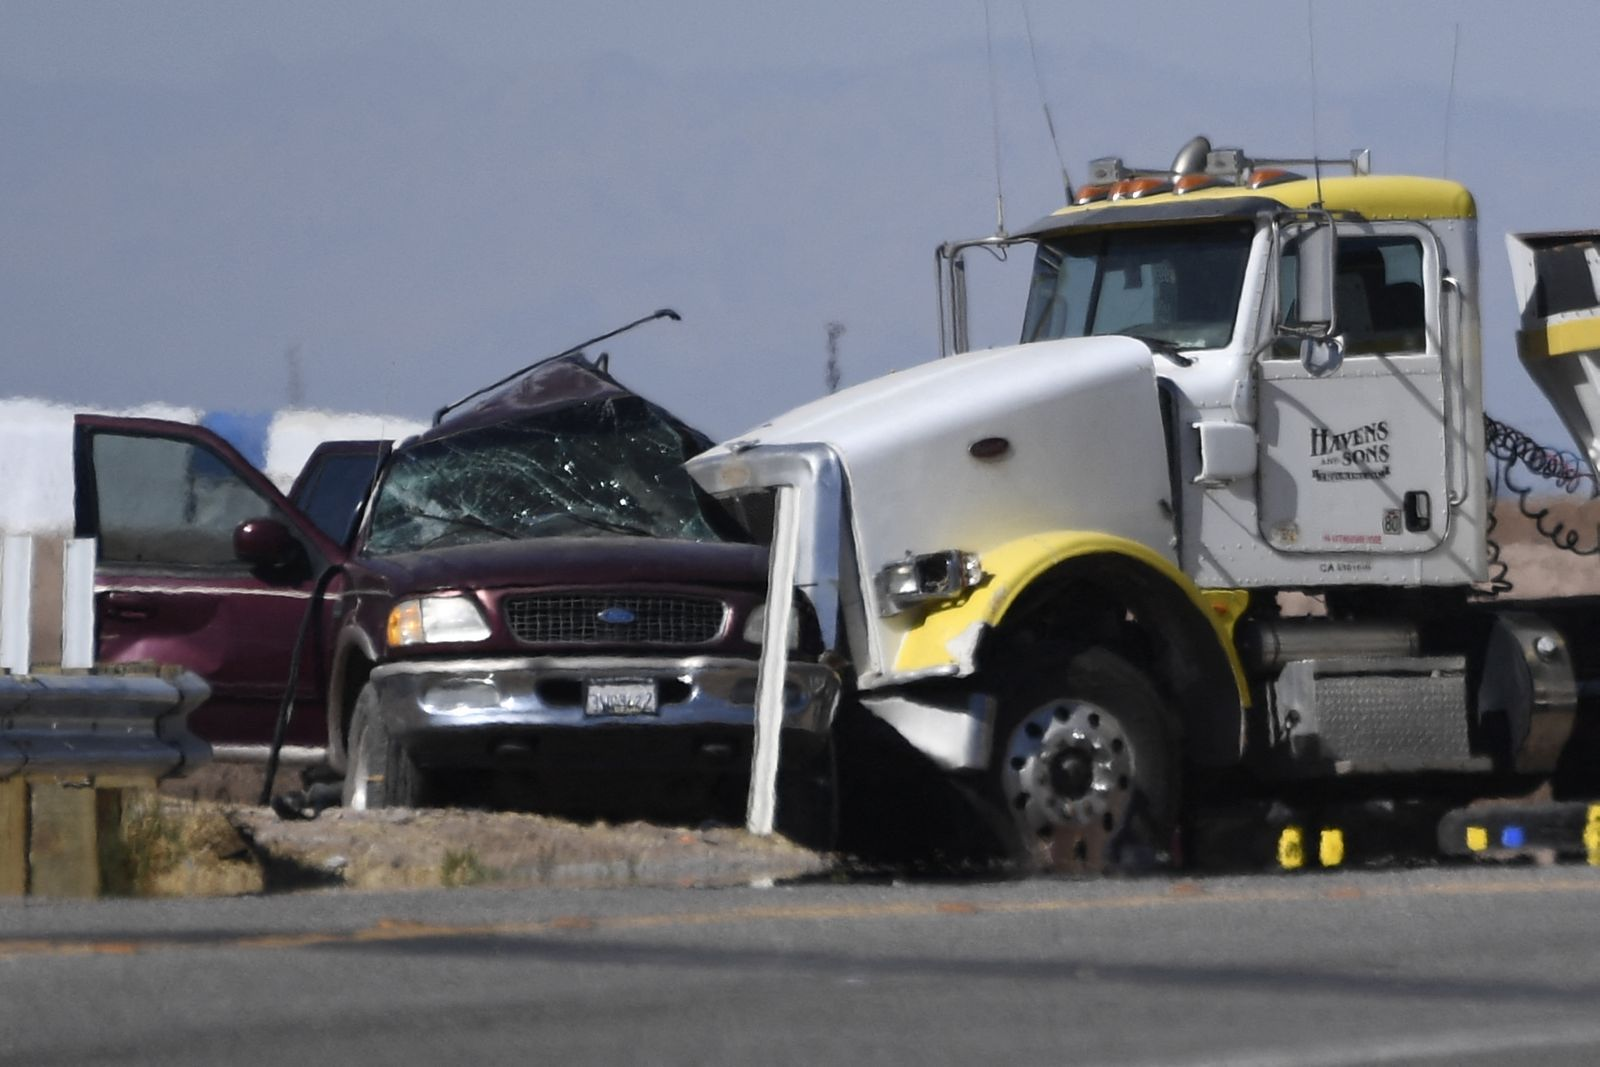 At least 15 dead after SUV, truck collide in California: hospital ban/ec/st